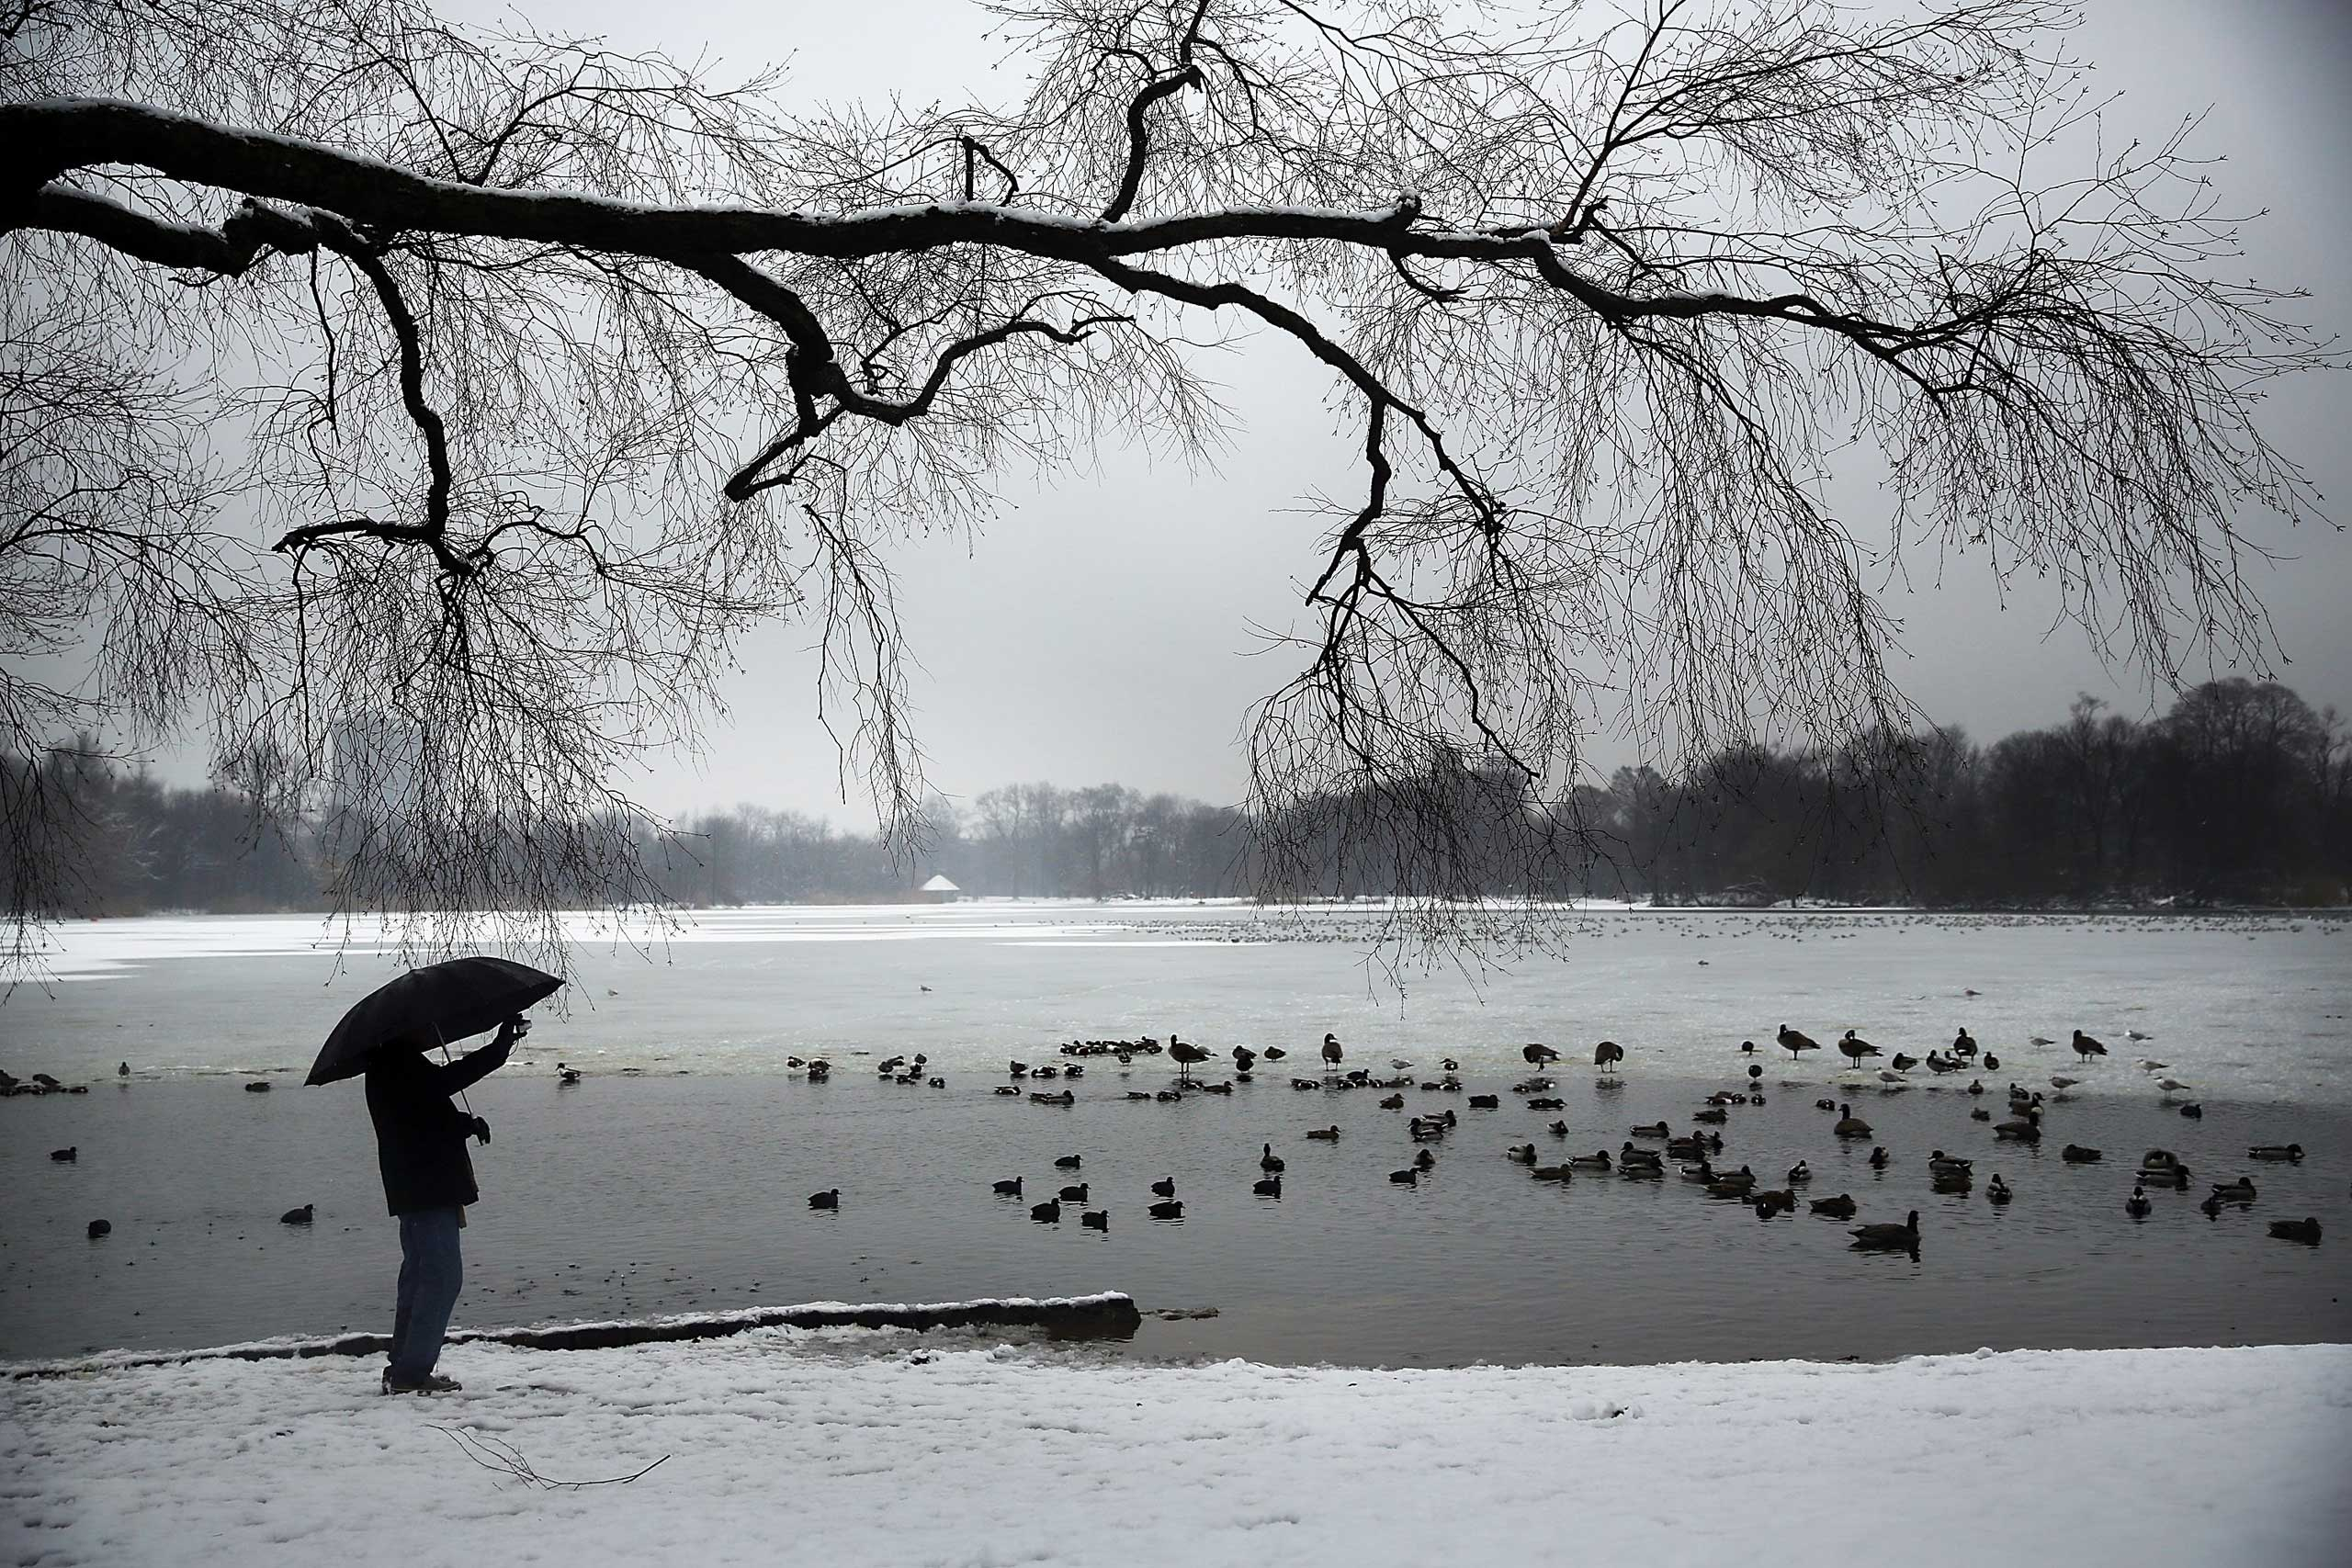 A man takes a picture of ducks and geese at a lake in Brooklyn's Prospect Park following an evening storm on Jan. 24, 2015 in New York City.